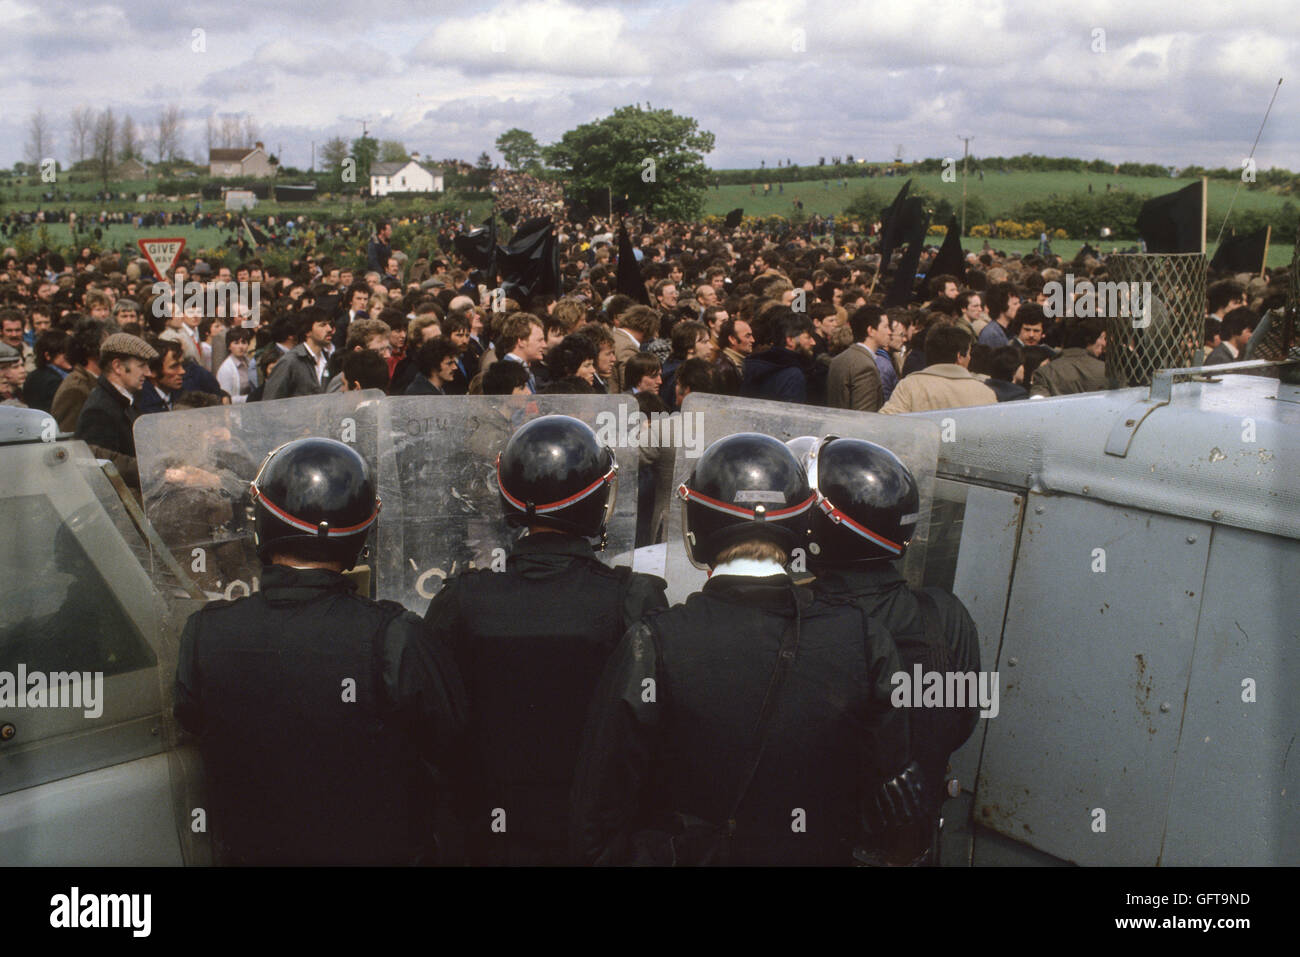 RUC at Hunger striker Francis Hughes funeral 1981 Bellaghy, in County Londonderry, Northern Ireland . HOMER SYKES - Stock Image